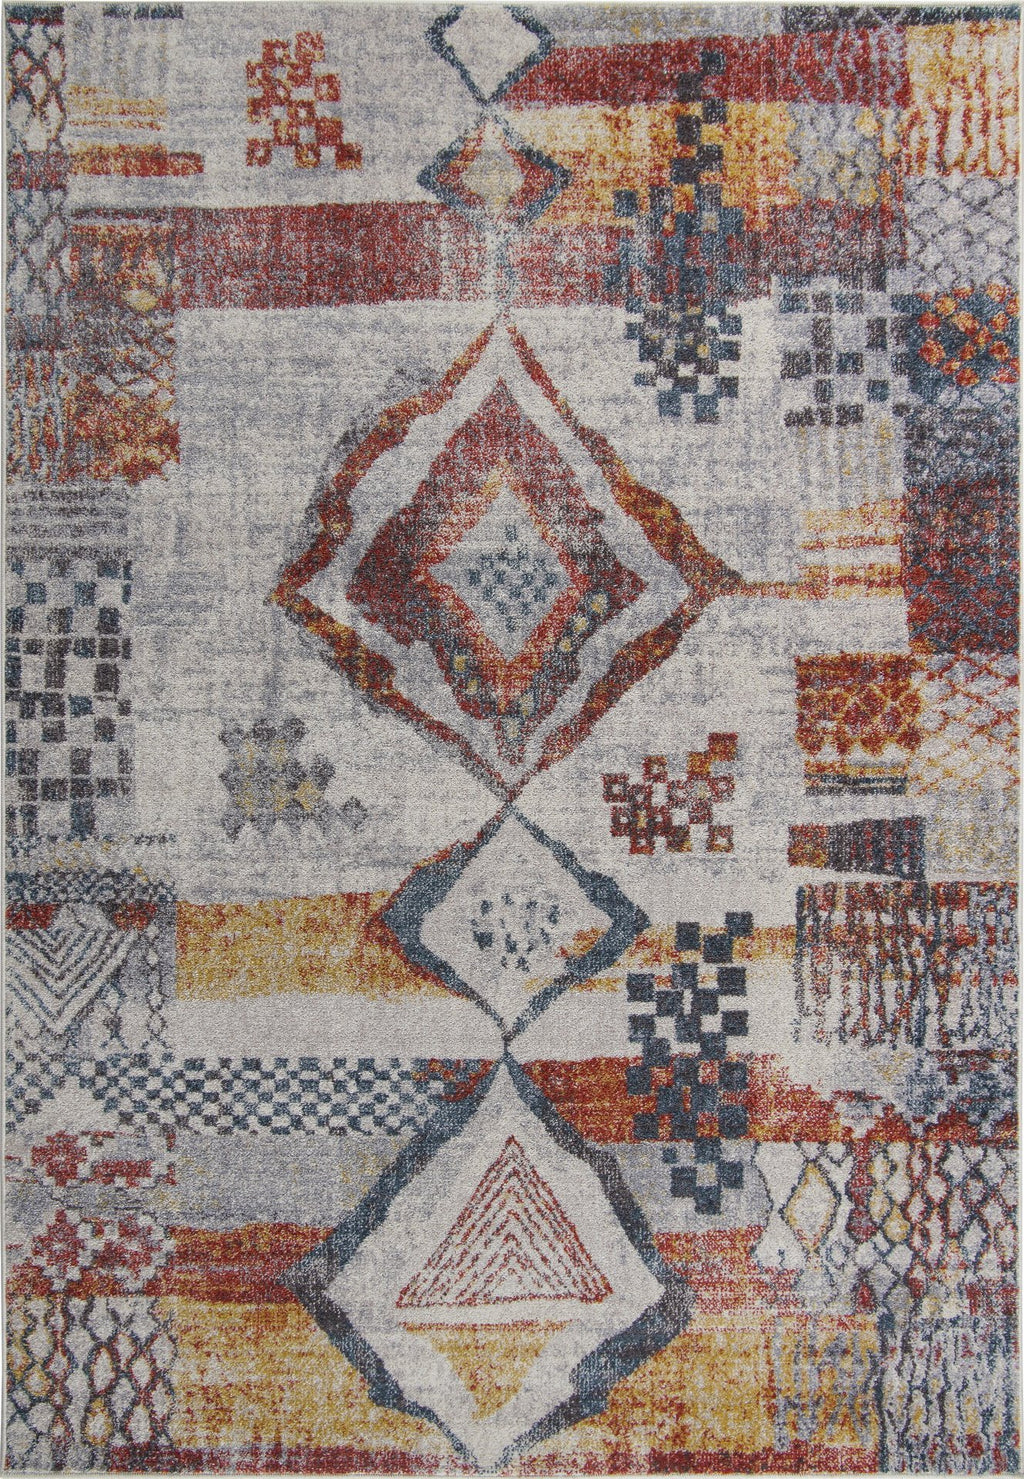 Morocco Southwestern Destressed Multicolor Area Rug